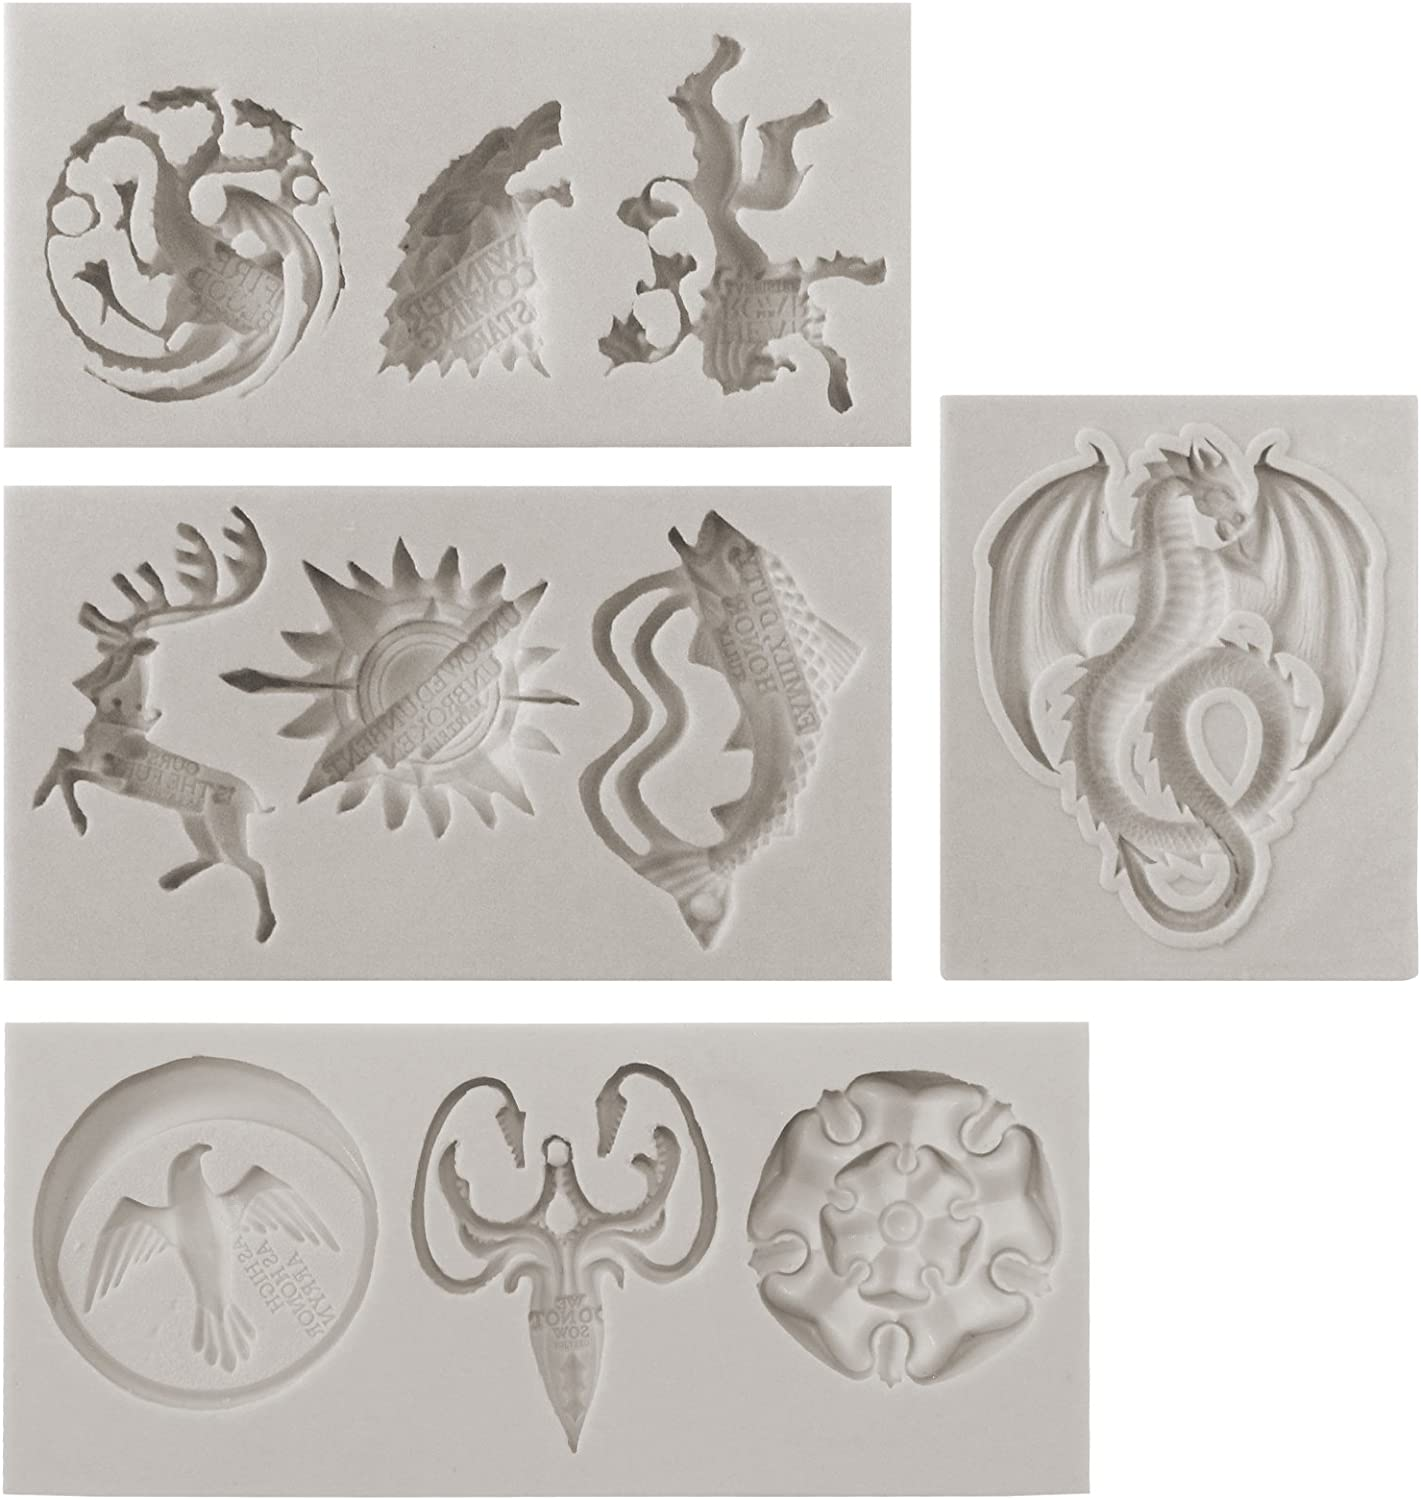 Funshowcase Game Thrones GOT inspired House Sigils and Mottos Silicone Molds for Sugarcraft, Fondant Cake Decoration, Cupcake Topper, Polymer Clay Resin Casting Jewelry and Crafting Projects, 4-in-set